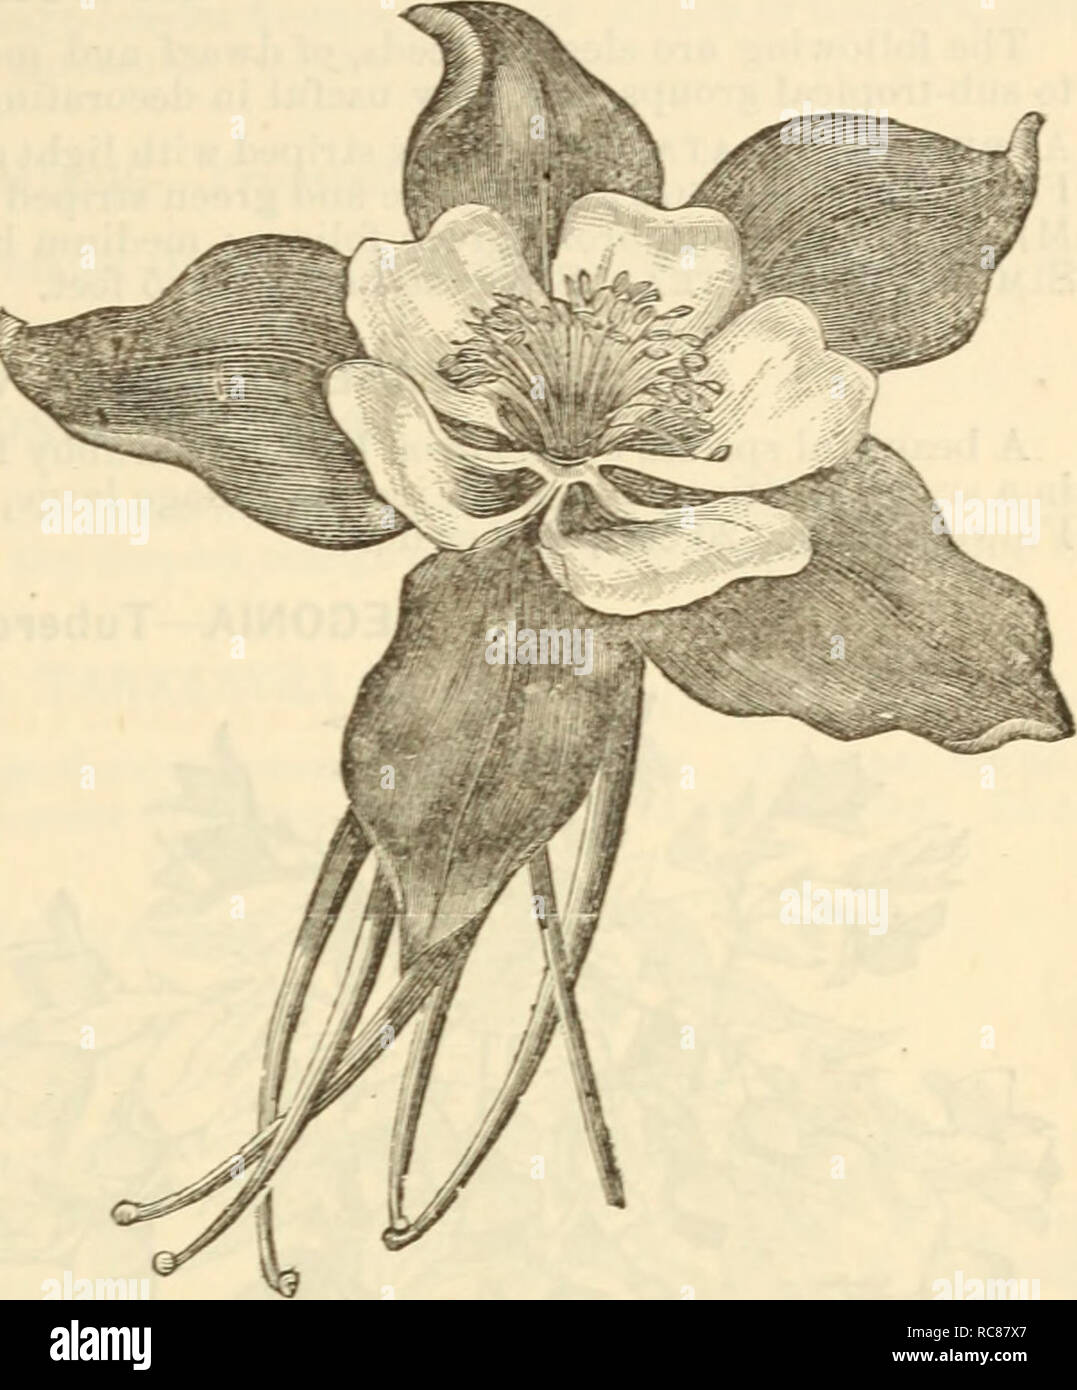 . Dreer's garden calendar : 1880. Seeds Catalogs; Nursery stock Catalogs; Gardening Catalogs; Flowers Seeds Catalogs. Drccr 's Garden Calendar. 85 -Rocky Mountain Columbine. AIV1PEL0PSIS VEITCHI—Miniature Virginia Creeper. An introduction from Japan which has proven entirely hardy. It grows as rapidly as the old Virginia creeper, and attains a height of 50 feet. It clings firmly to any wall, tree, etc. The leaves are small on young plants, which at first are of an olive green brown color, changing to bright scarlet in theautumn. As the plant acquires age the leaves increase in size. This varie - Stock Image